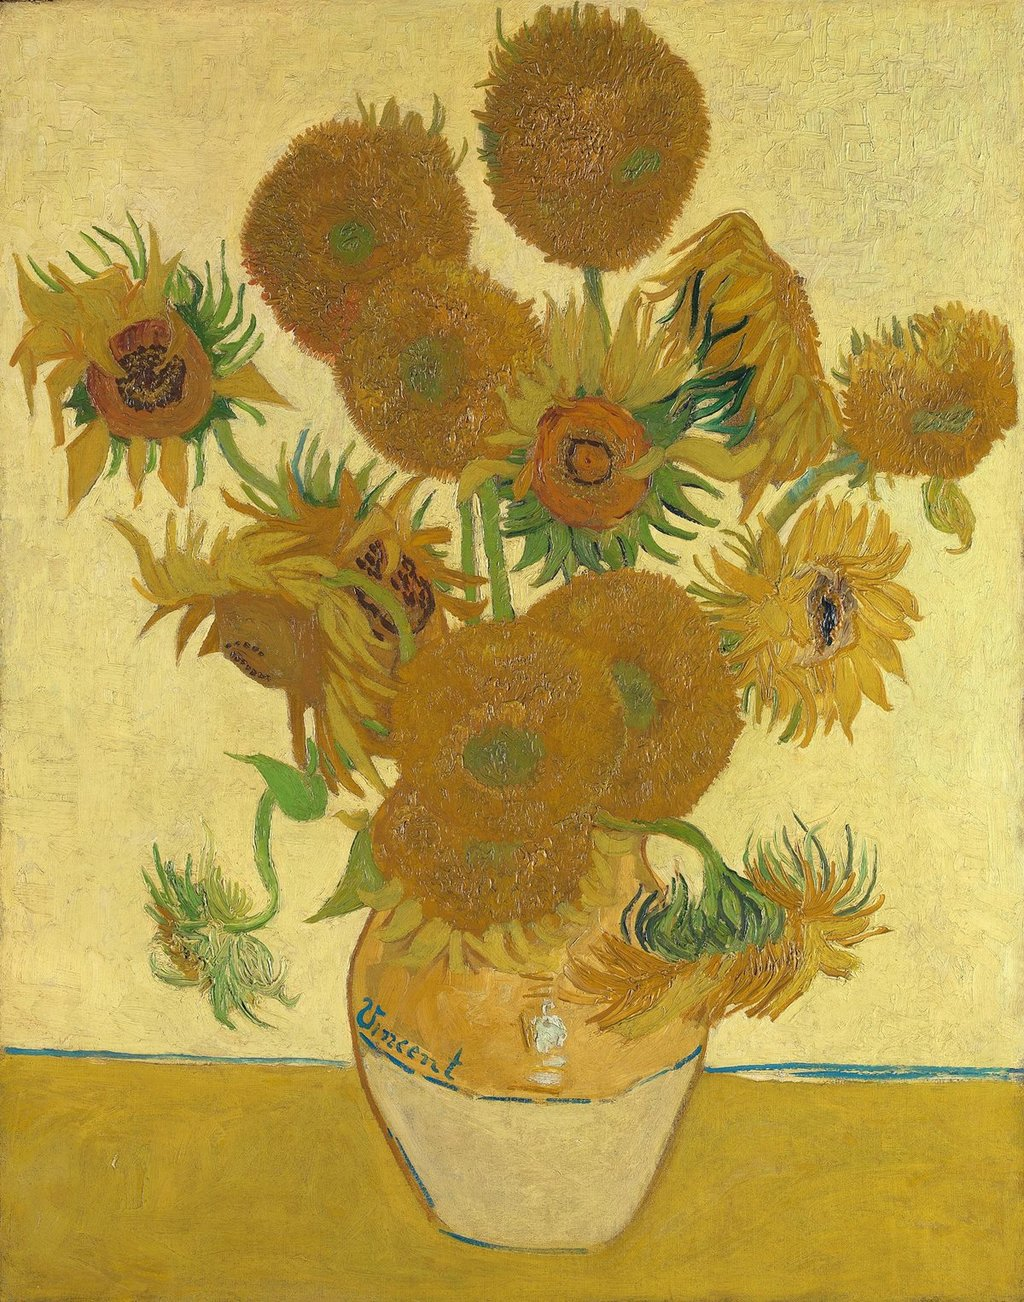 1699px-Vincent_van_Gogh_-_Sunflowers_%281888__National_Gallery_London%29.jpg?1575036467